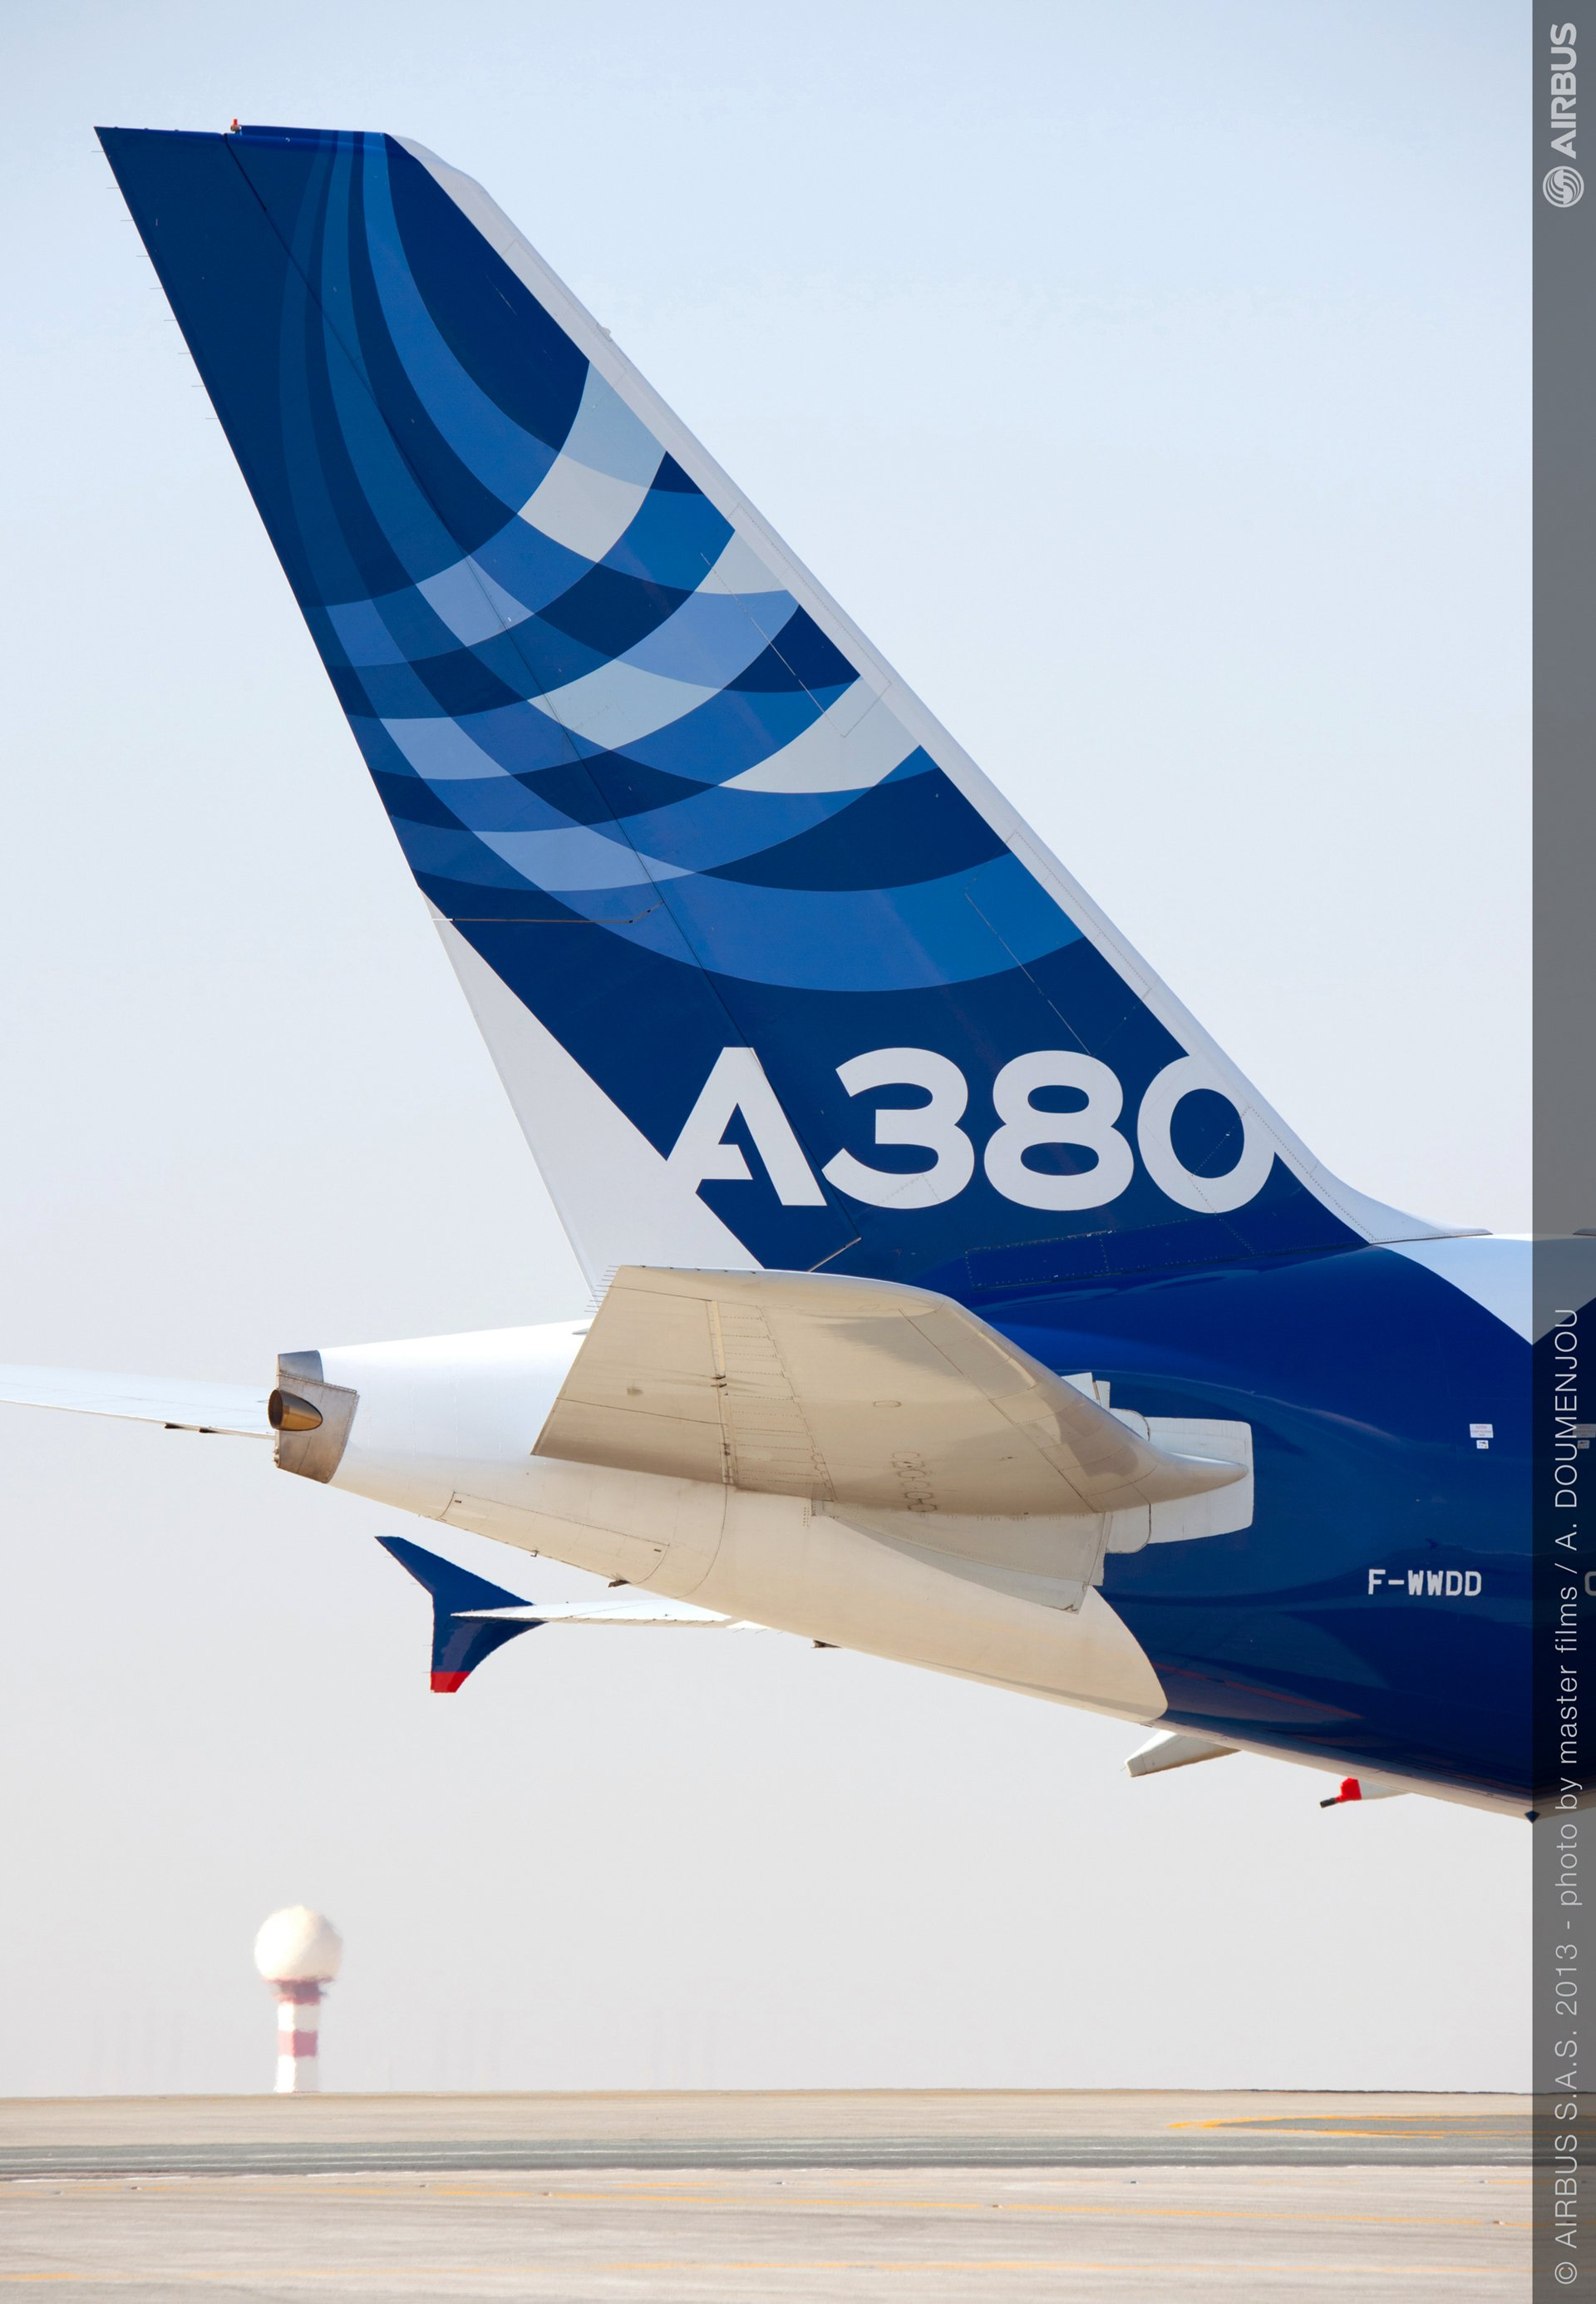 Day one ambiance 07 A380 Airbus VTP